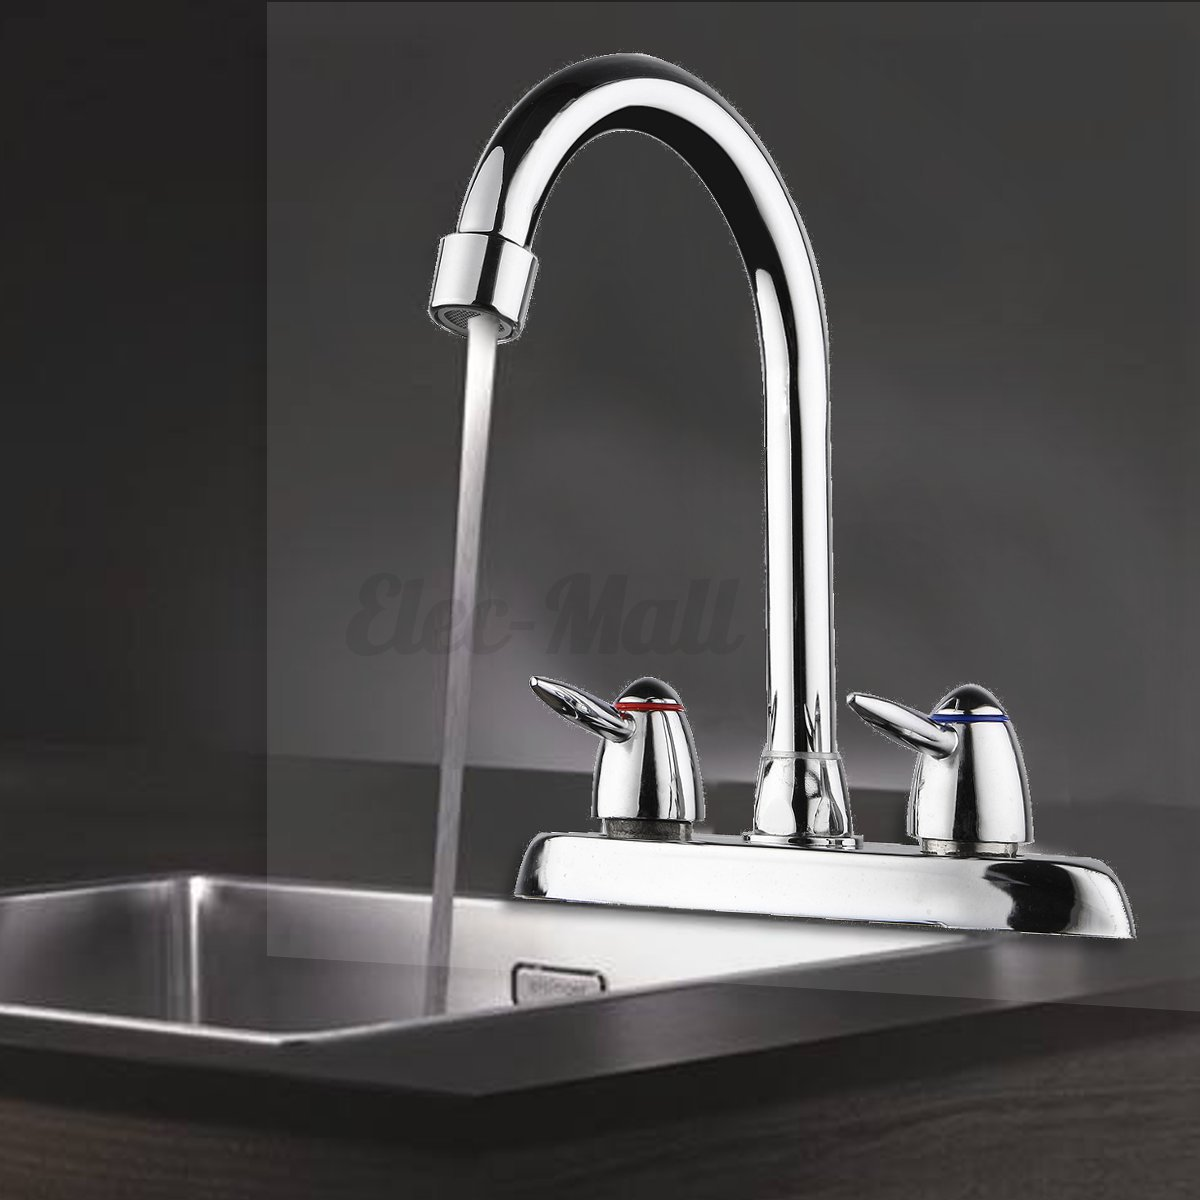 Kitchen Basin Sink Faucet Tap Mixer Spout Reverse Osmosis Drinking ...